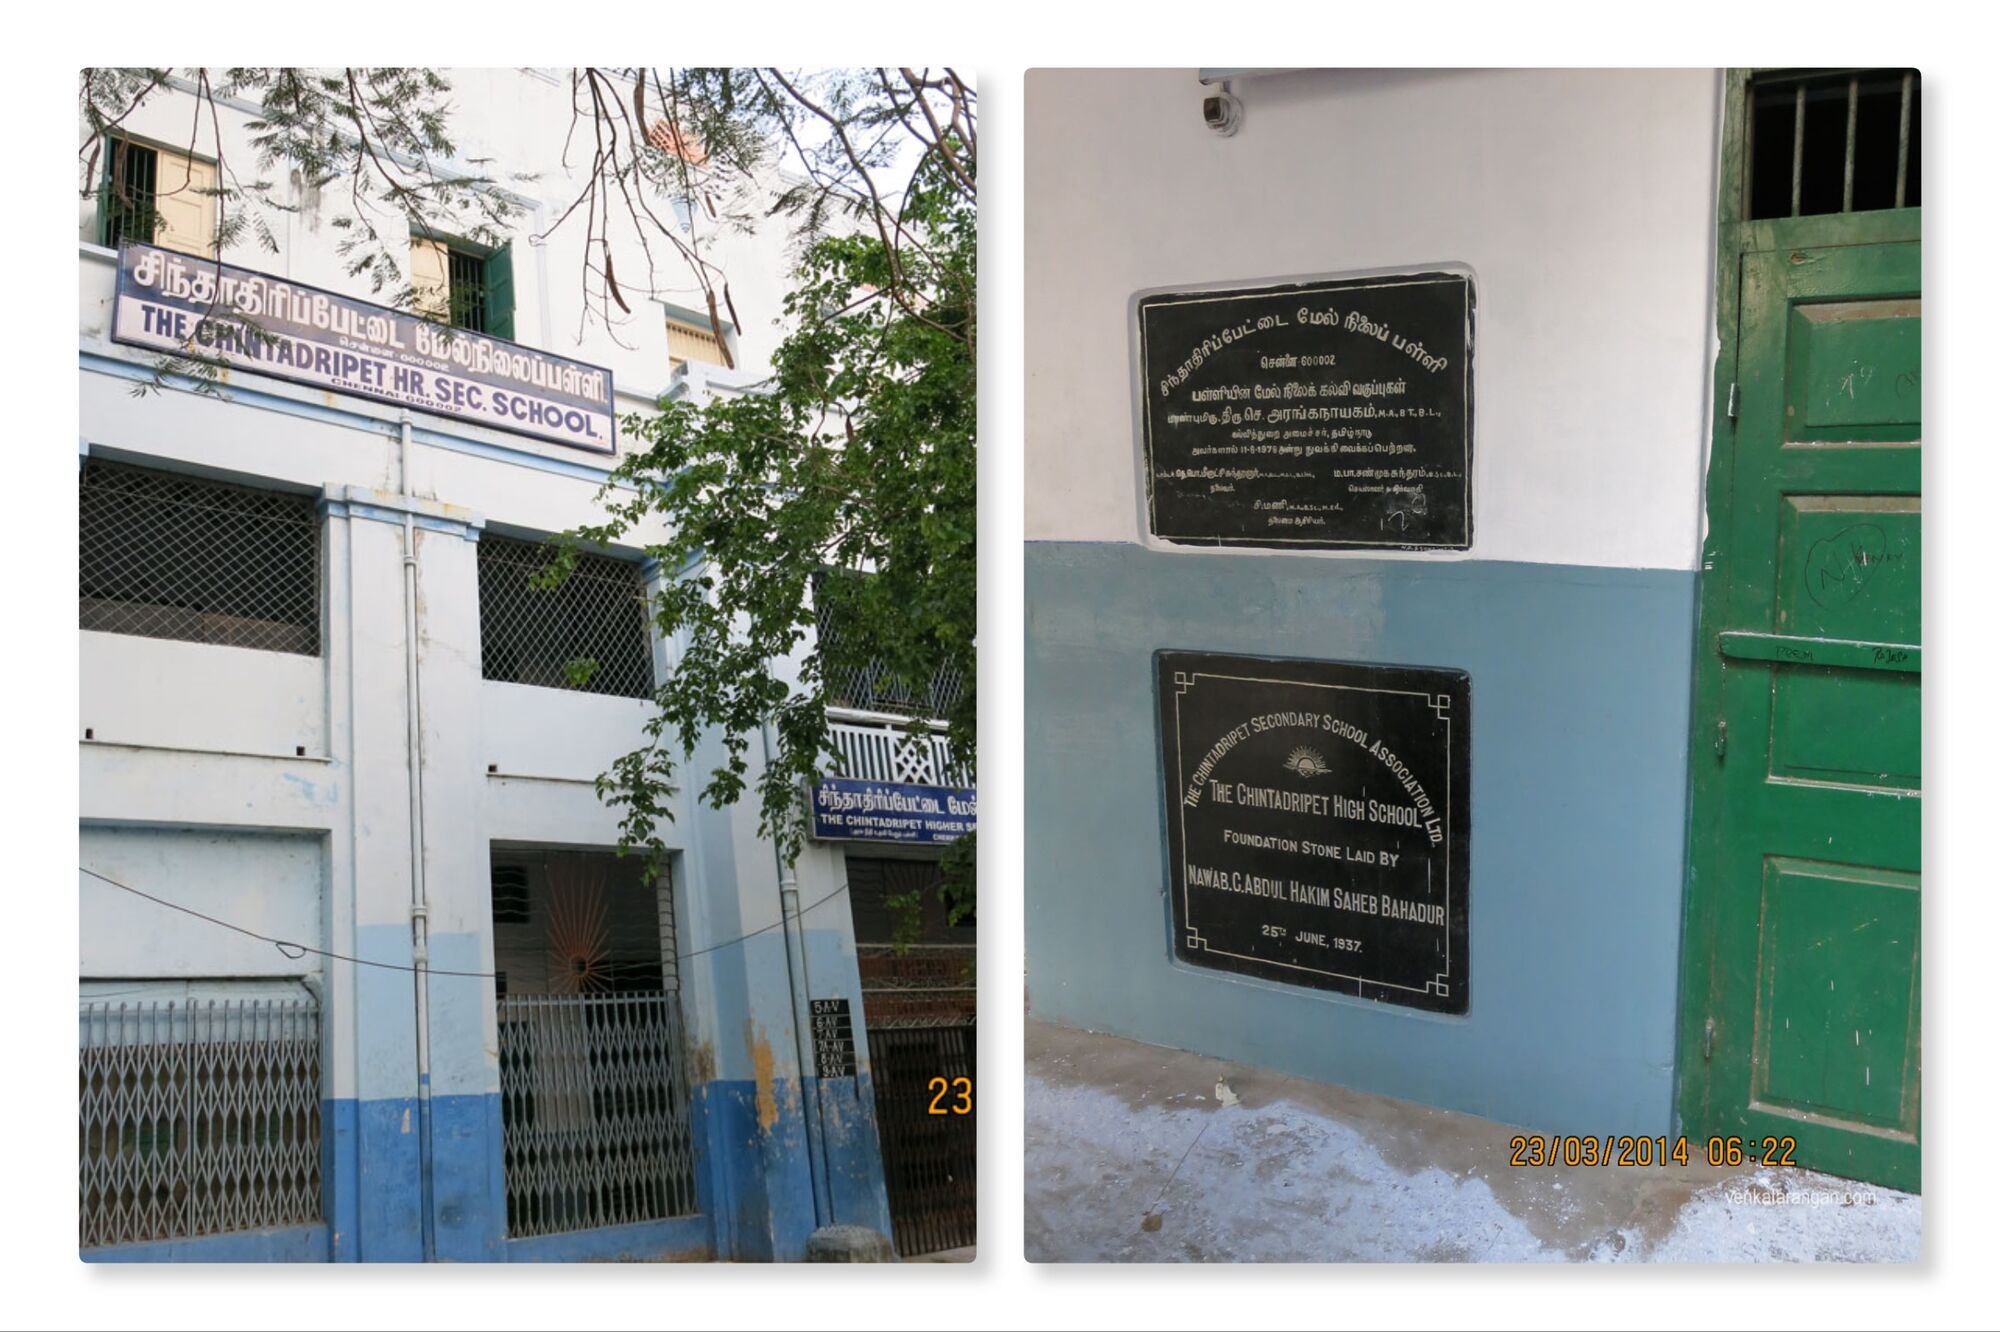 The Chintadripet Secondary School - 25th June 1937 - Nawab C Abdul Hakim Saheb Bahadur